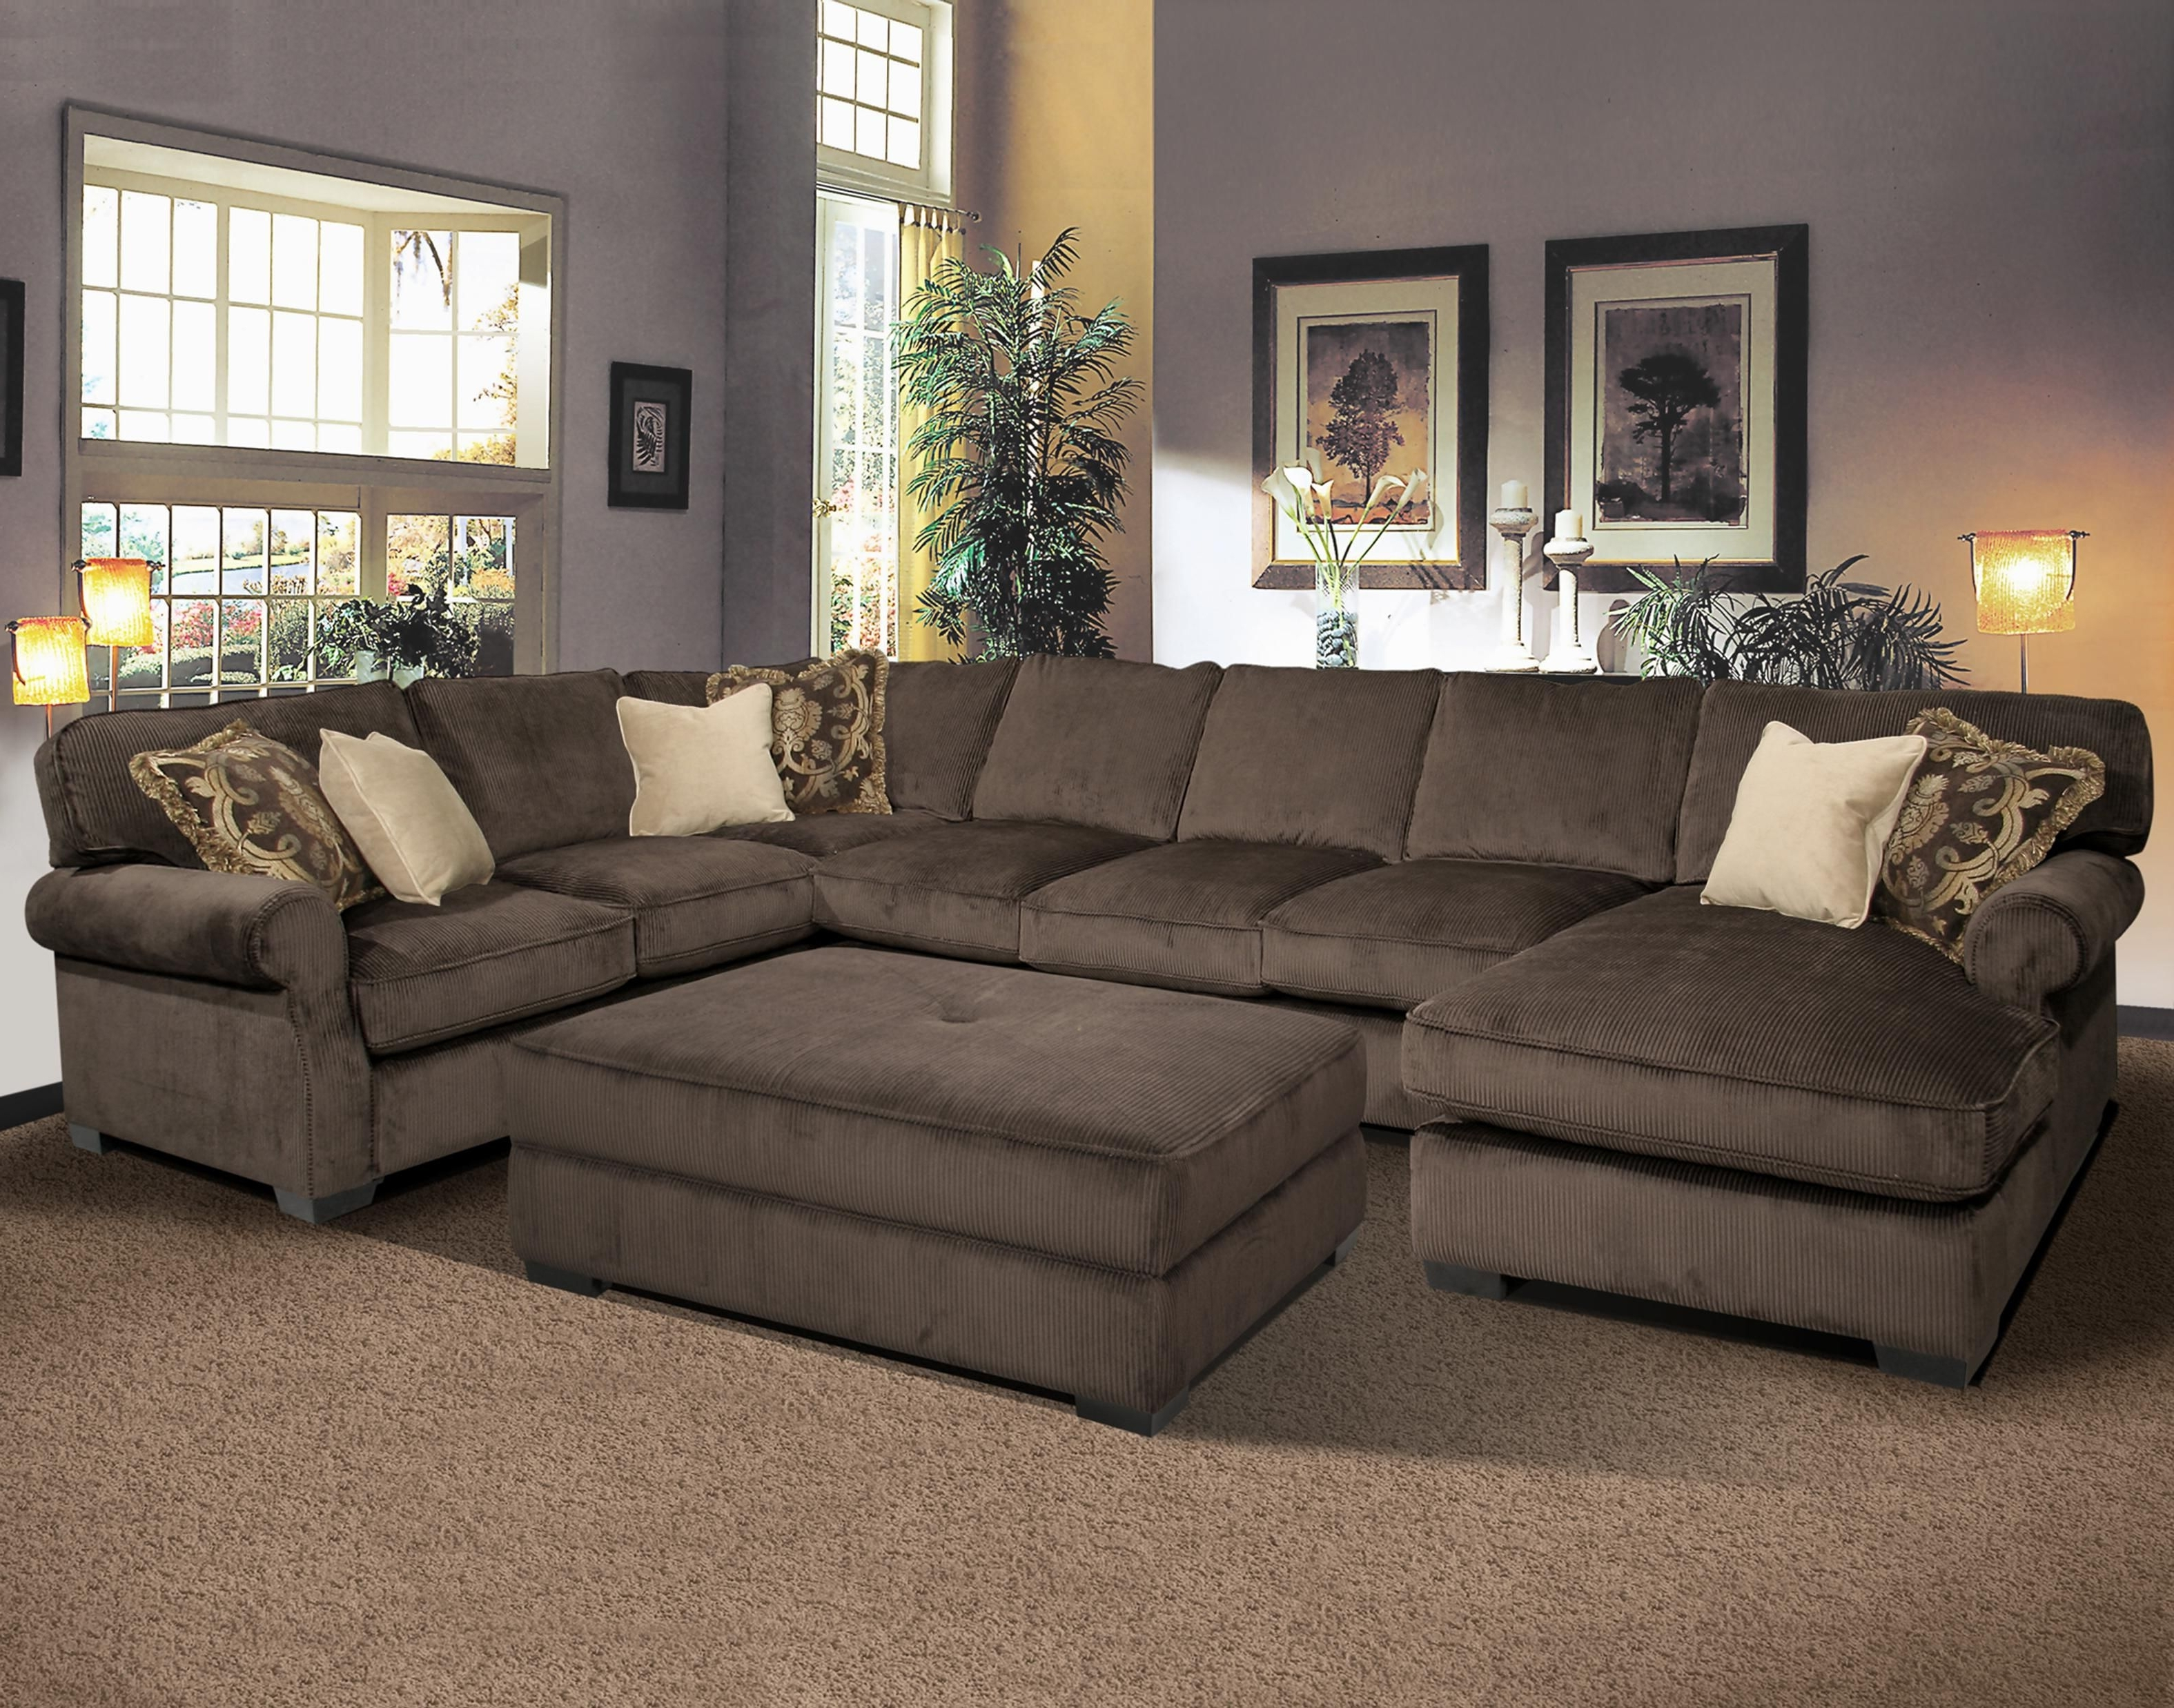 Most Popular Grand Island Oversized Cocktail Ottoman For Sectional Sofa Throughout Cheap Sectionals With Ottoman (View 2 of 20)